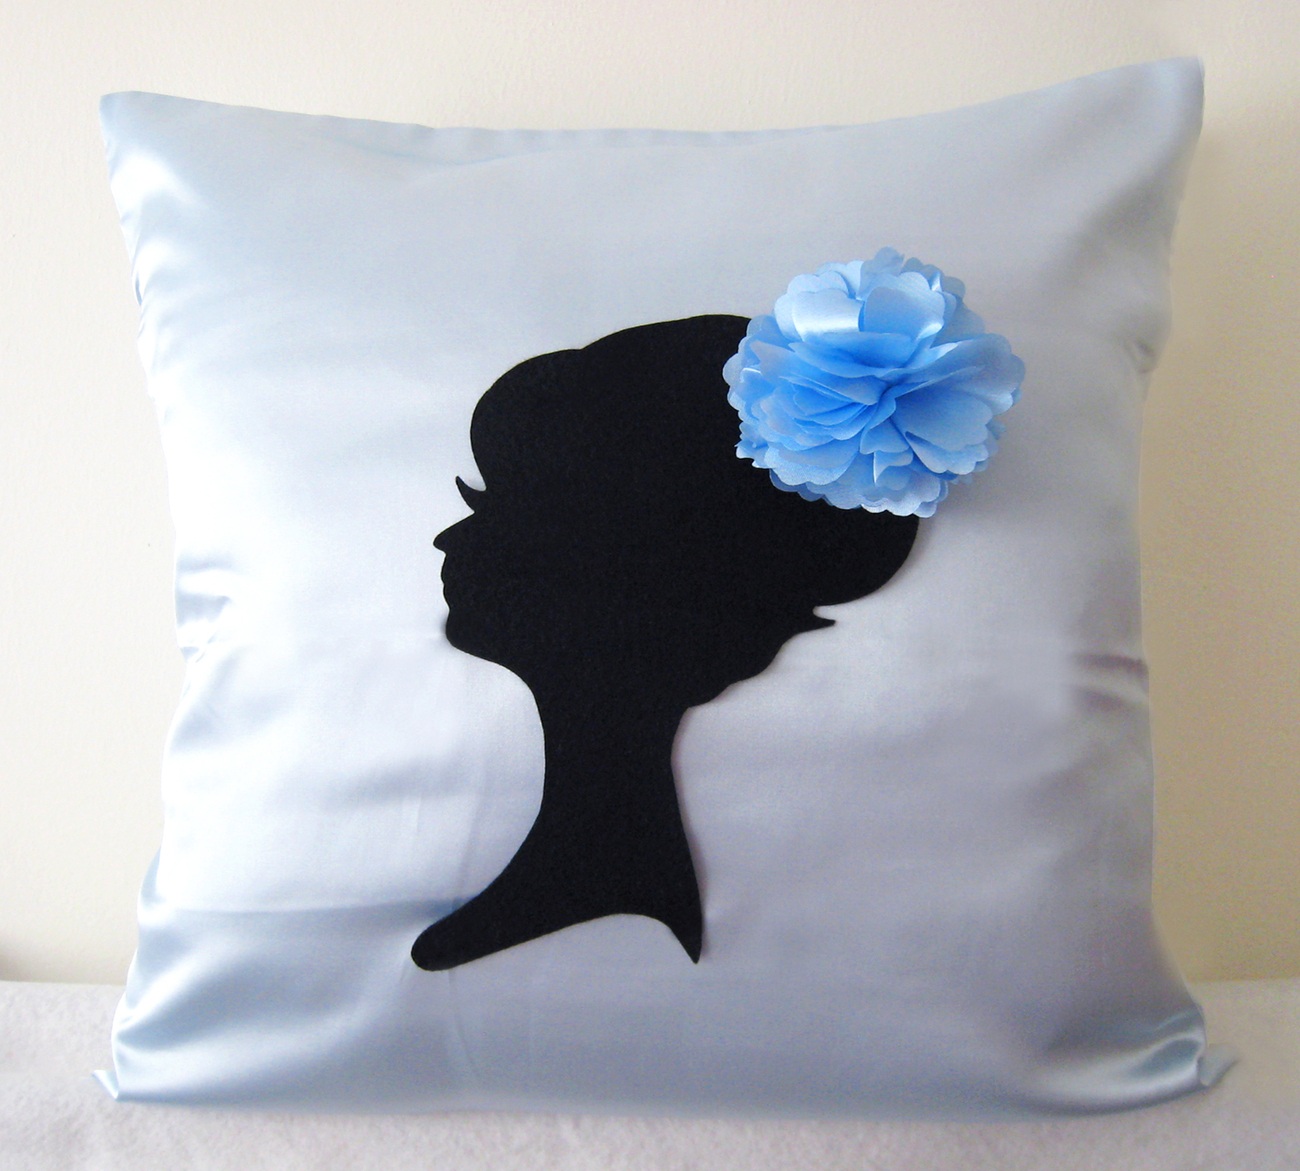 Primary image for Handmade Elegant Lady Light Blue And Decorative Pillow Cover. Girls Room Decor